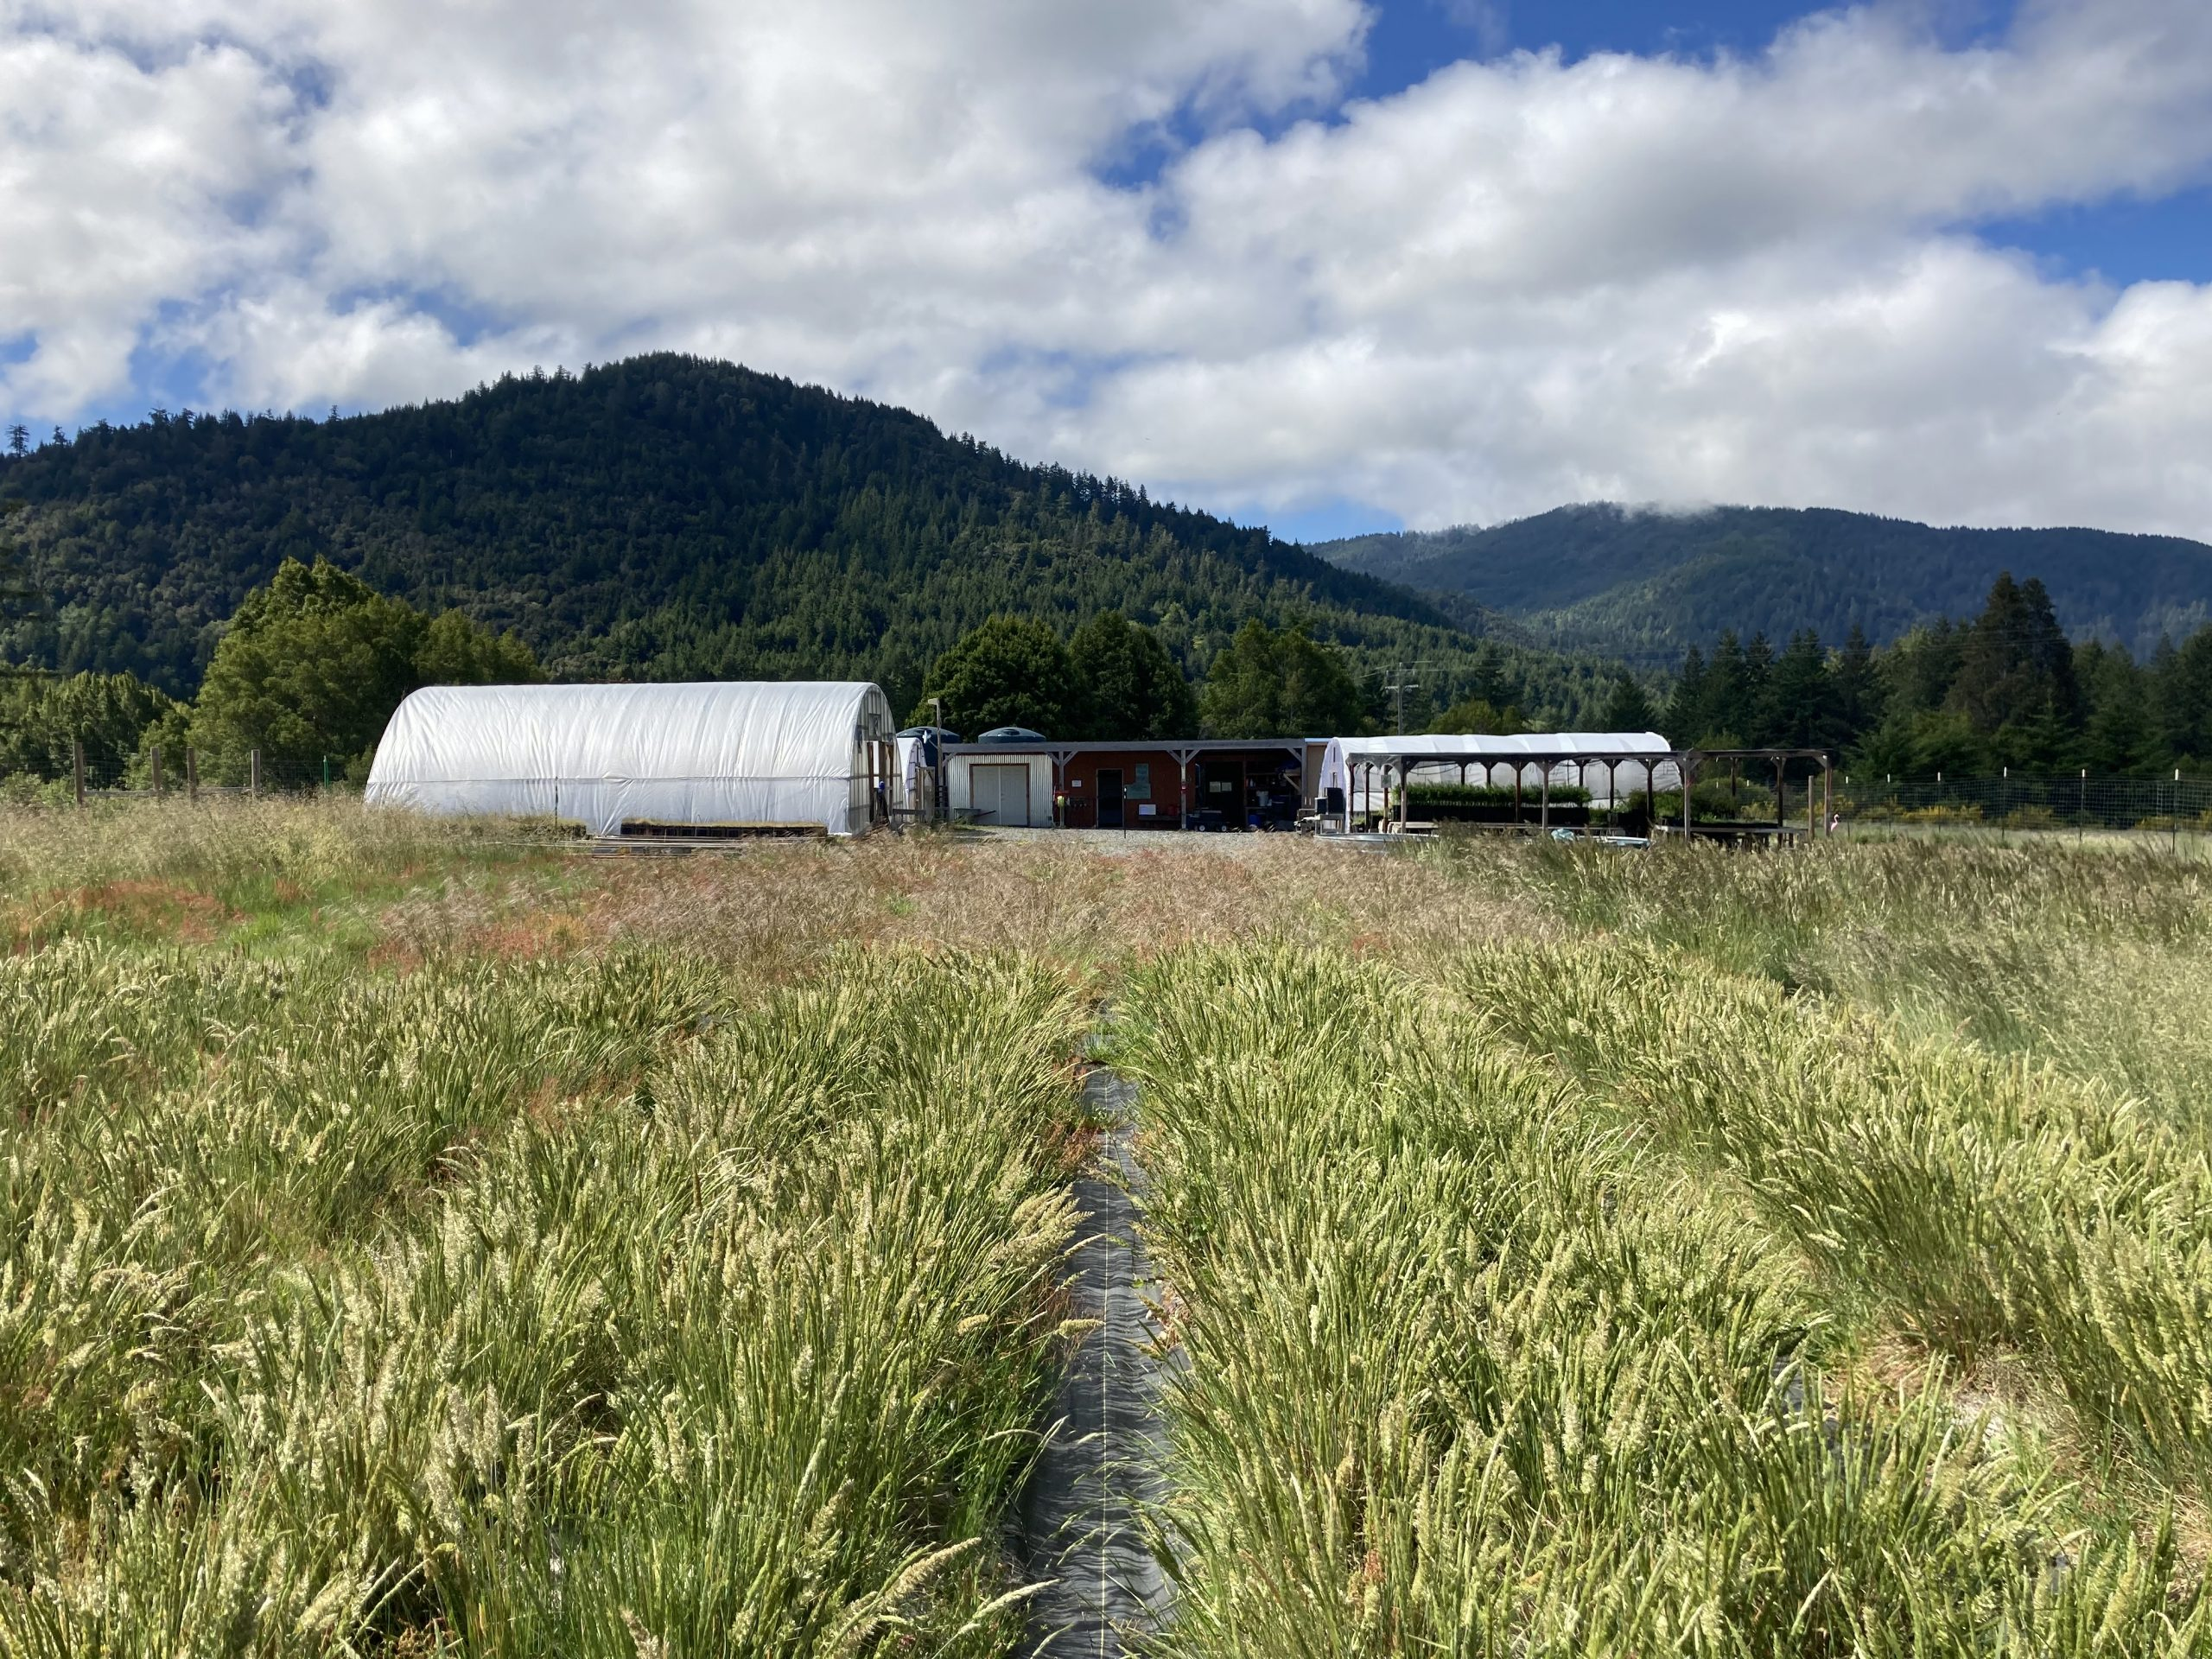 Image of MRC's Native Plant Nursery and Seed Farm, Spring 2021 by Veronica Yates